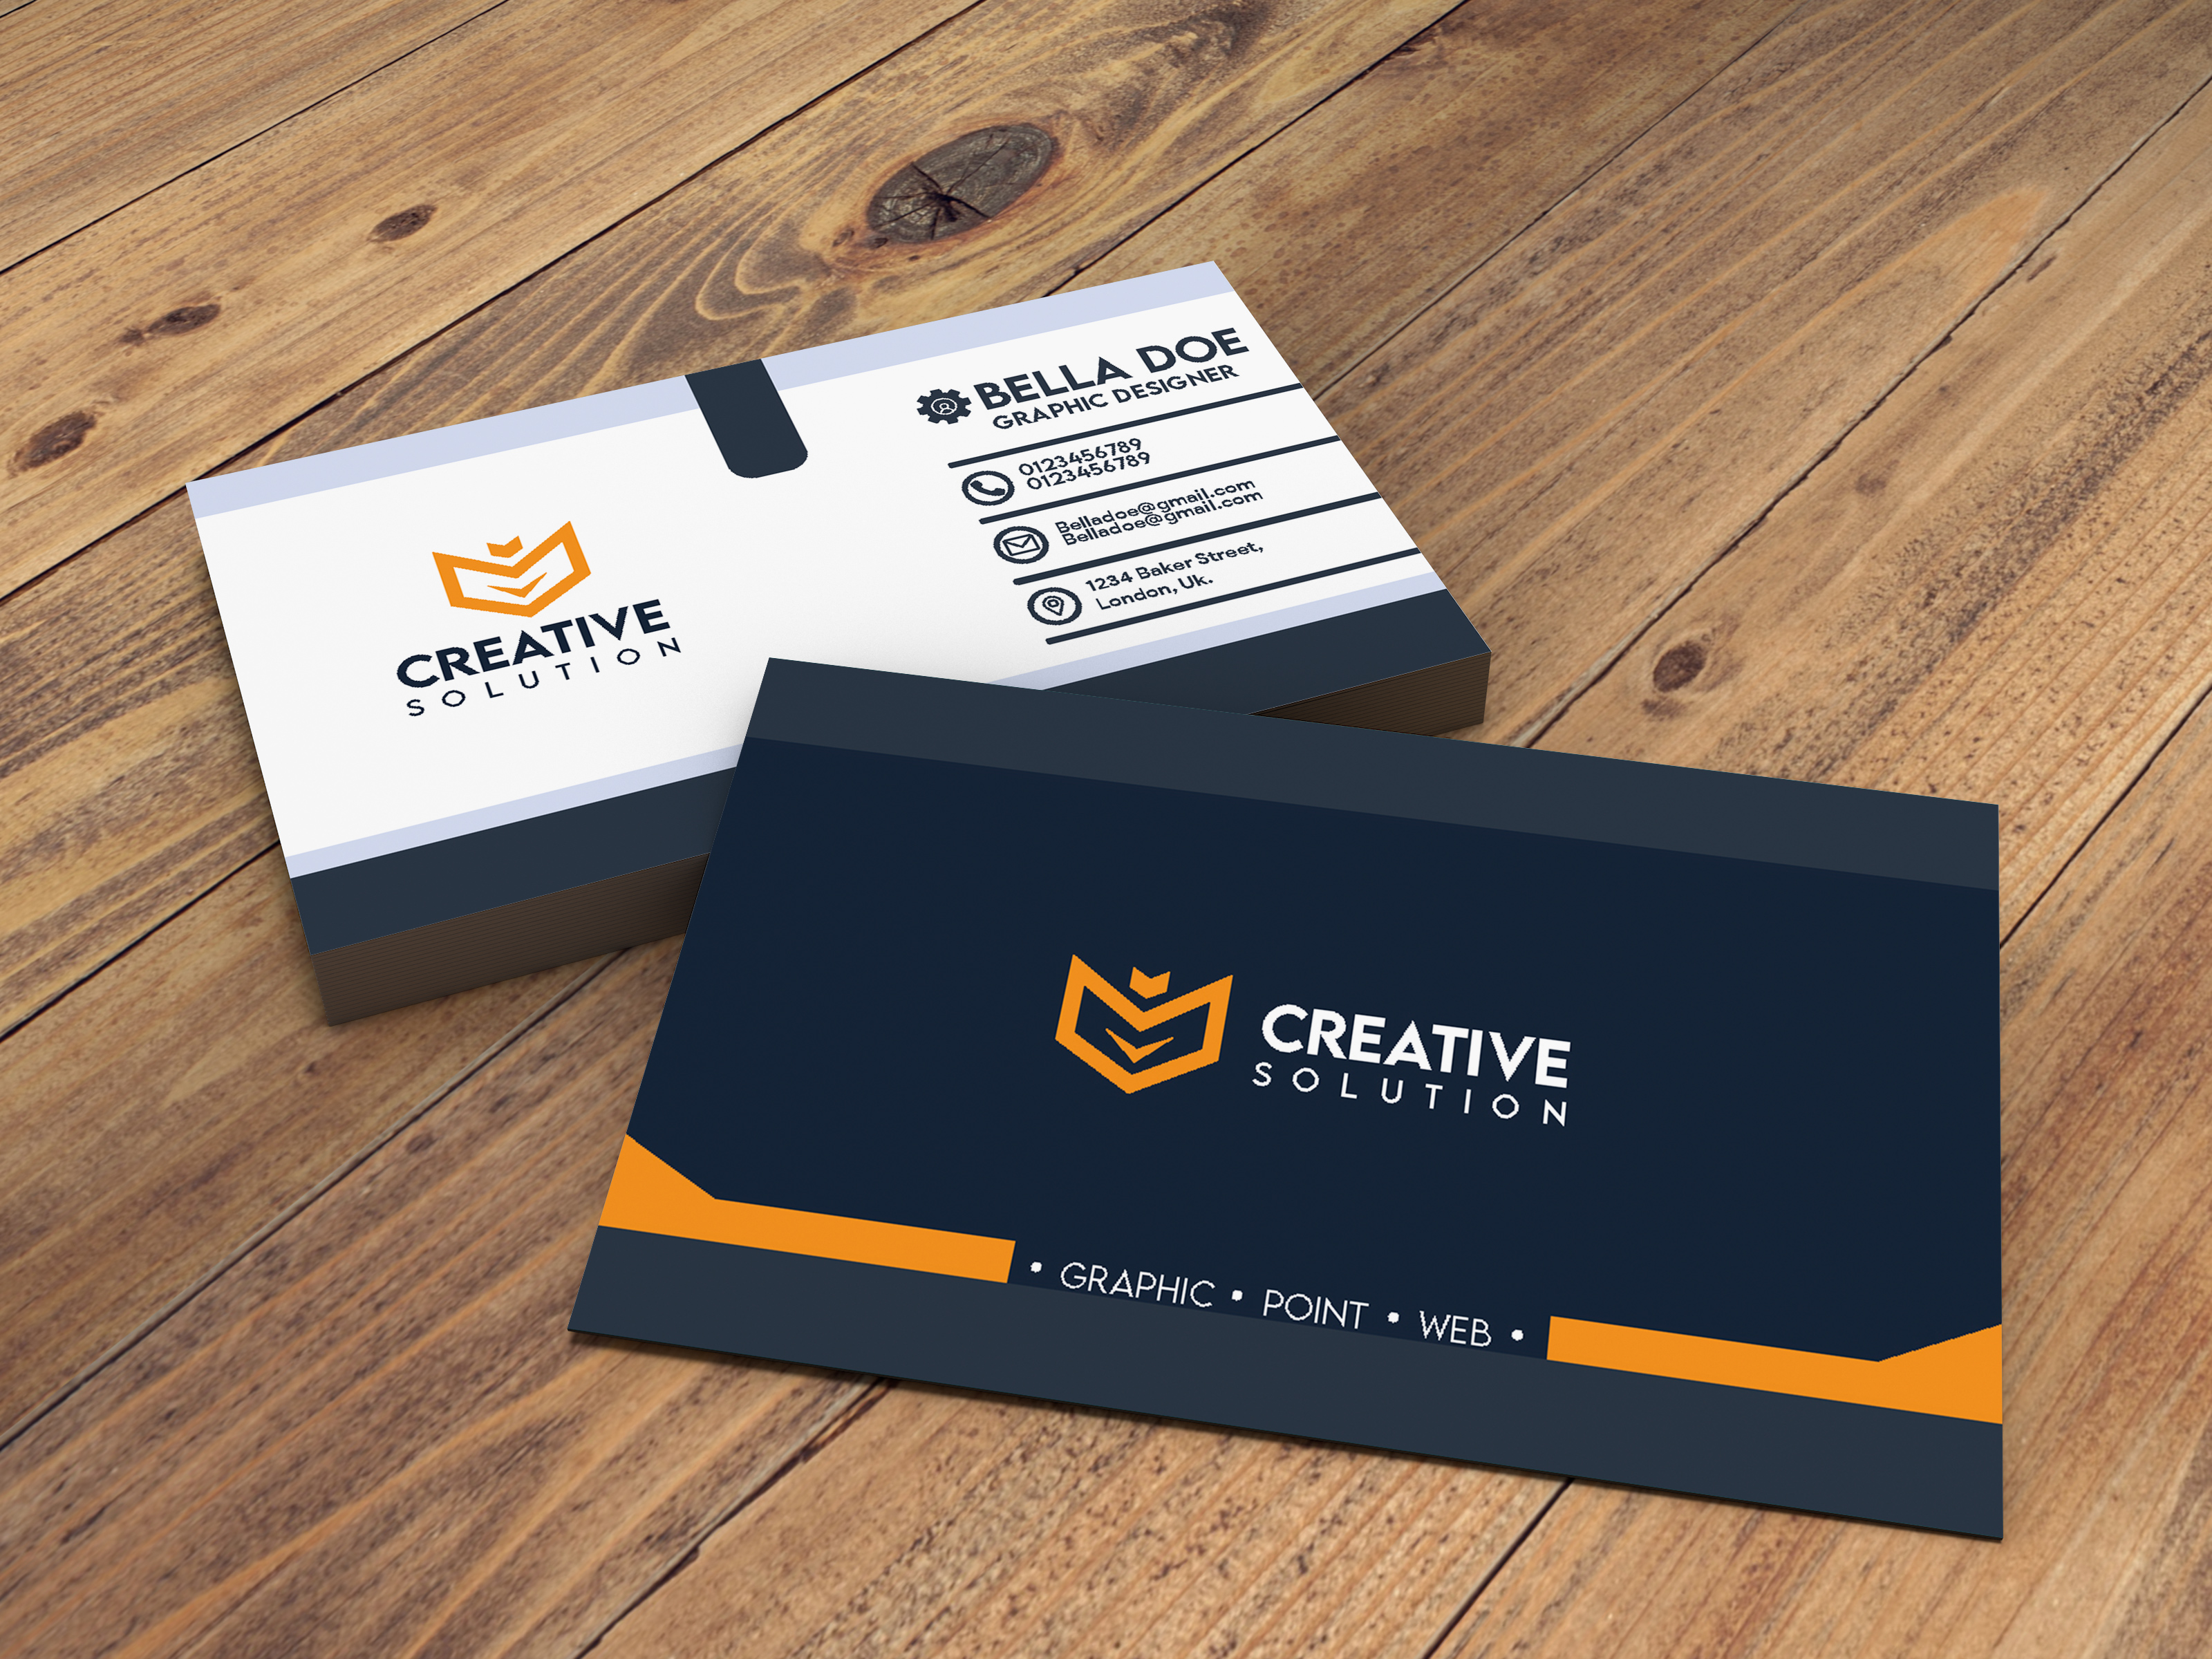 I'll design 1 modern minimalist business card for you